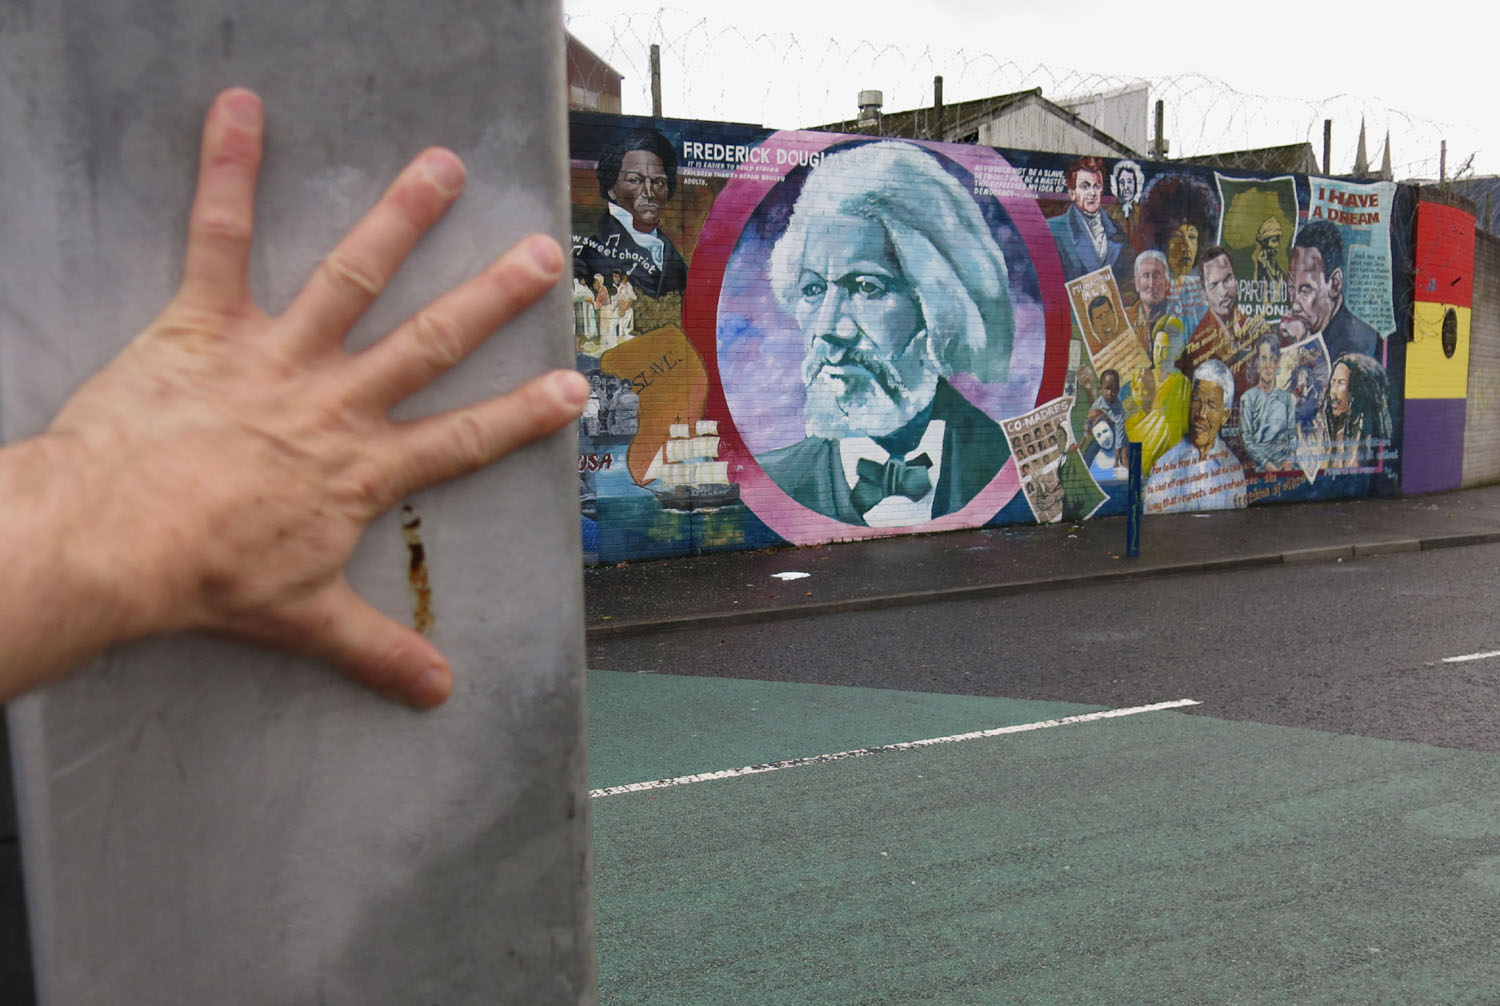 Northern-Ireland-Belfast-The-Troubles-Peace-Gate